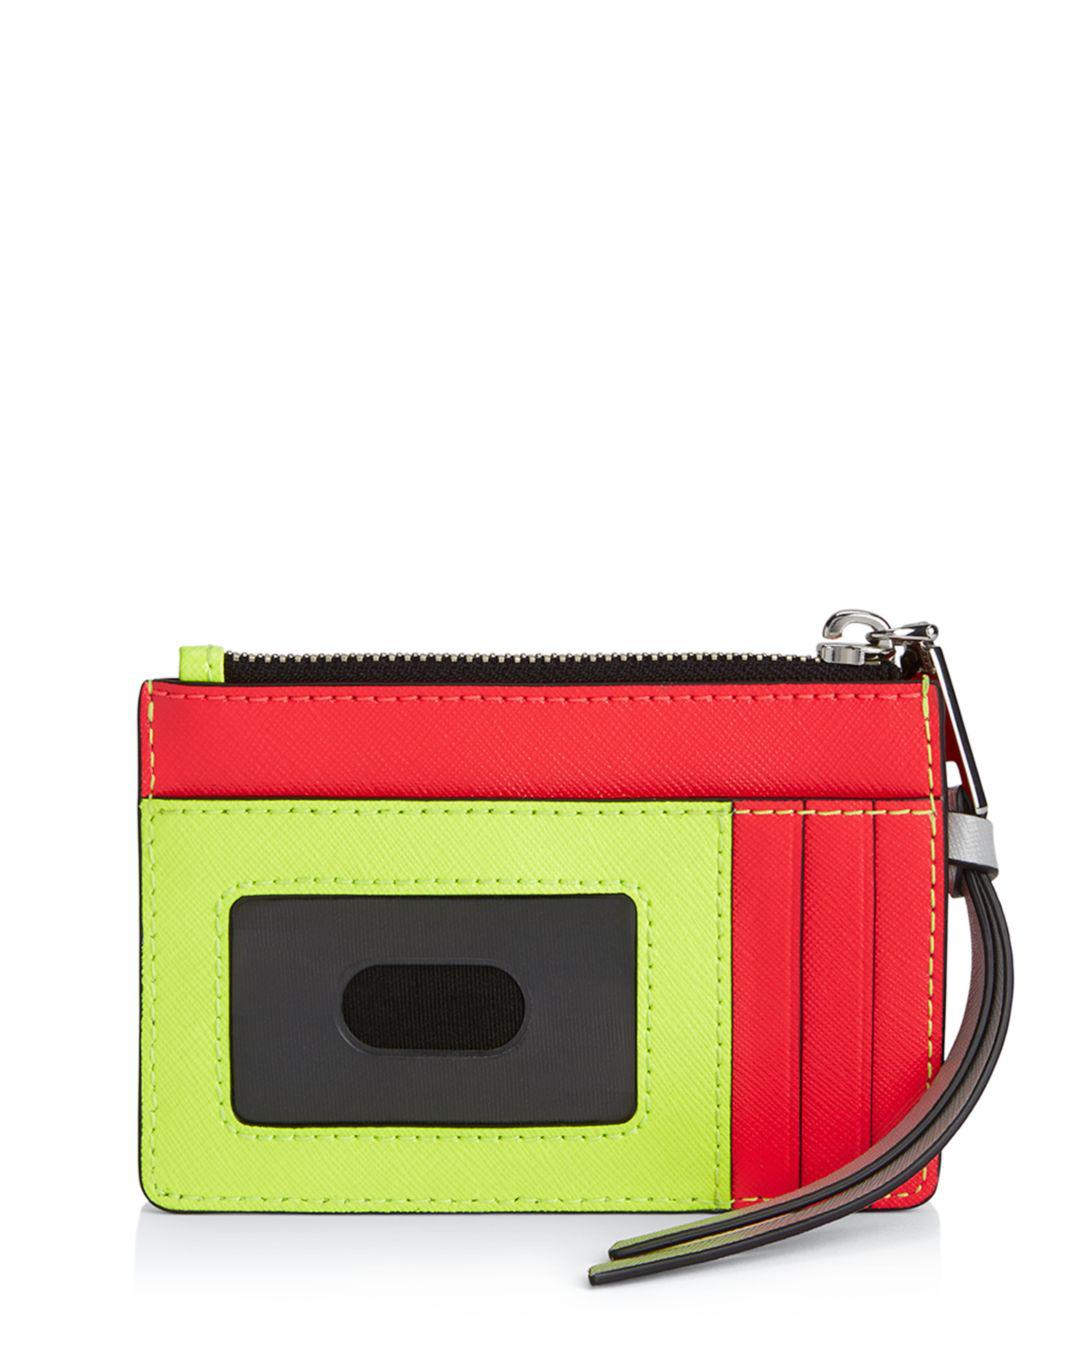 5ab5e2d0d8b1 Lyst - Marc Jacobs Top Zip Leather Multi Card Case in Yellow - Save 21%